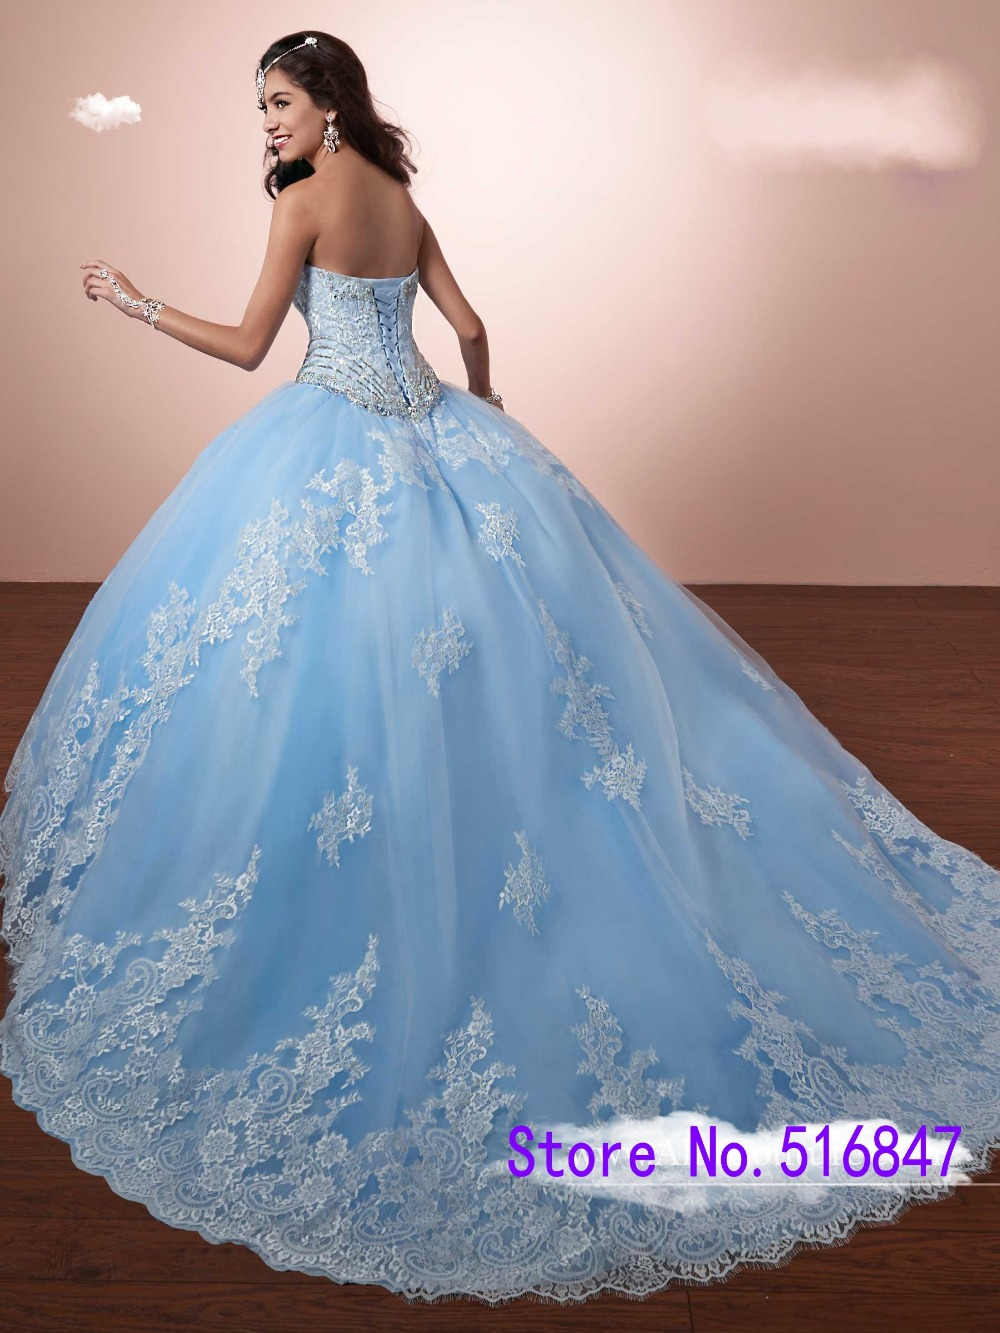 New Light Blue Ball Gown Quinceanera Dresses With Bolero Sweet 16 ...